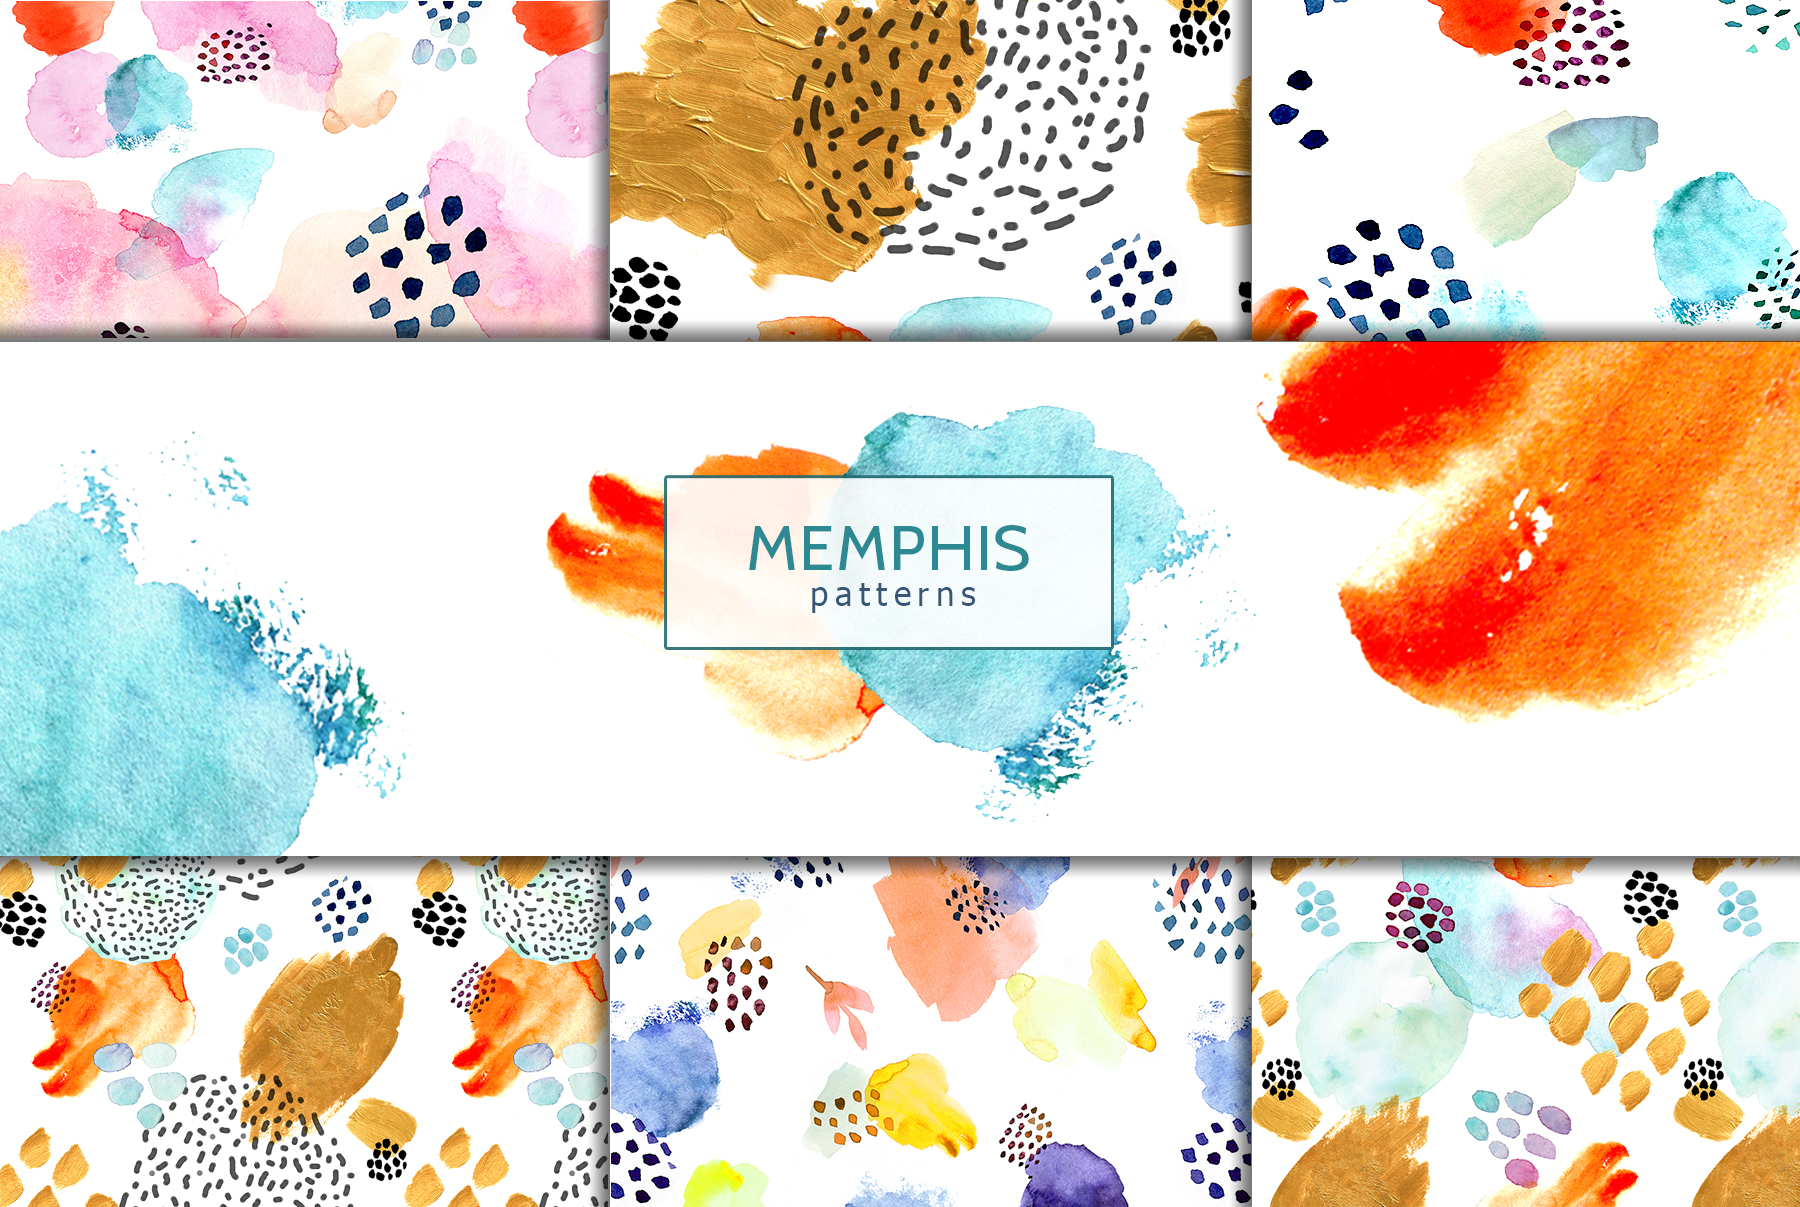 Watercolor memphis patterns & shapes example image 4